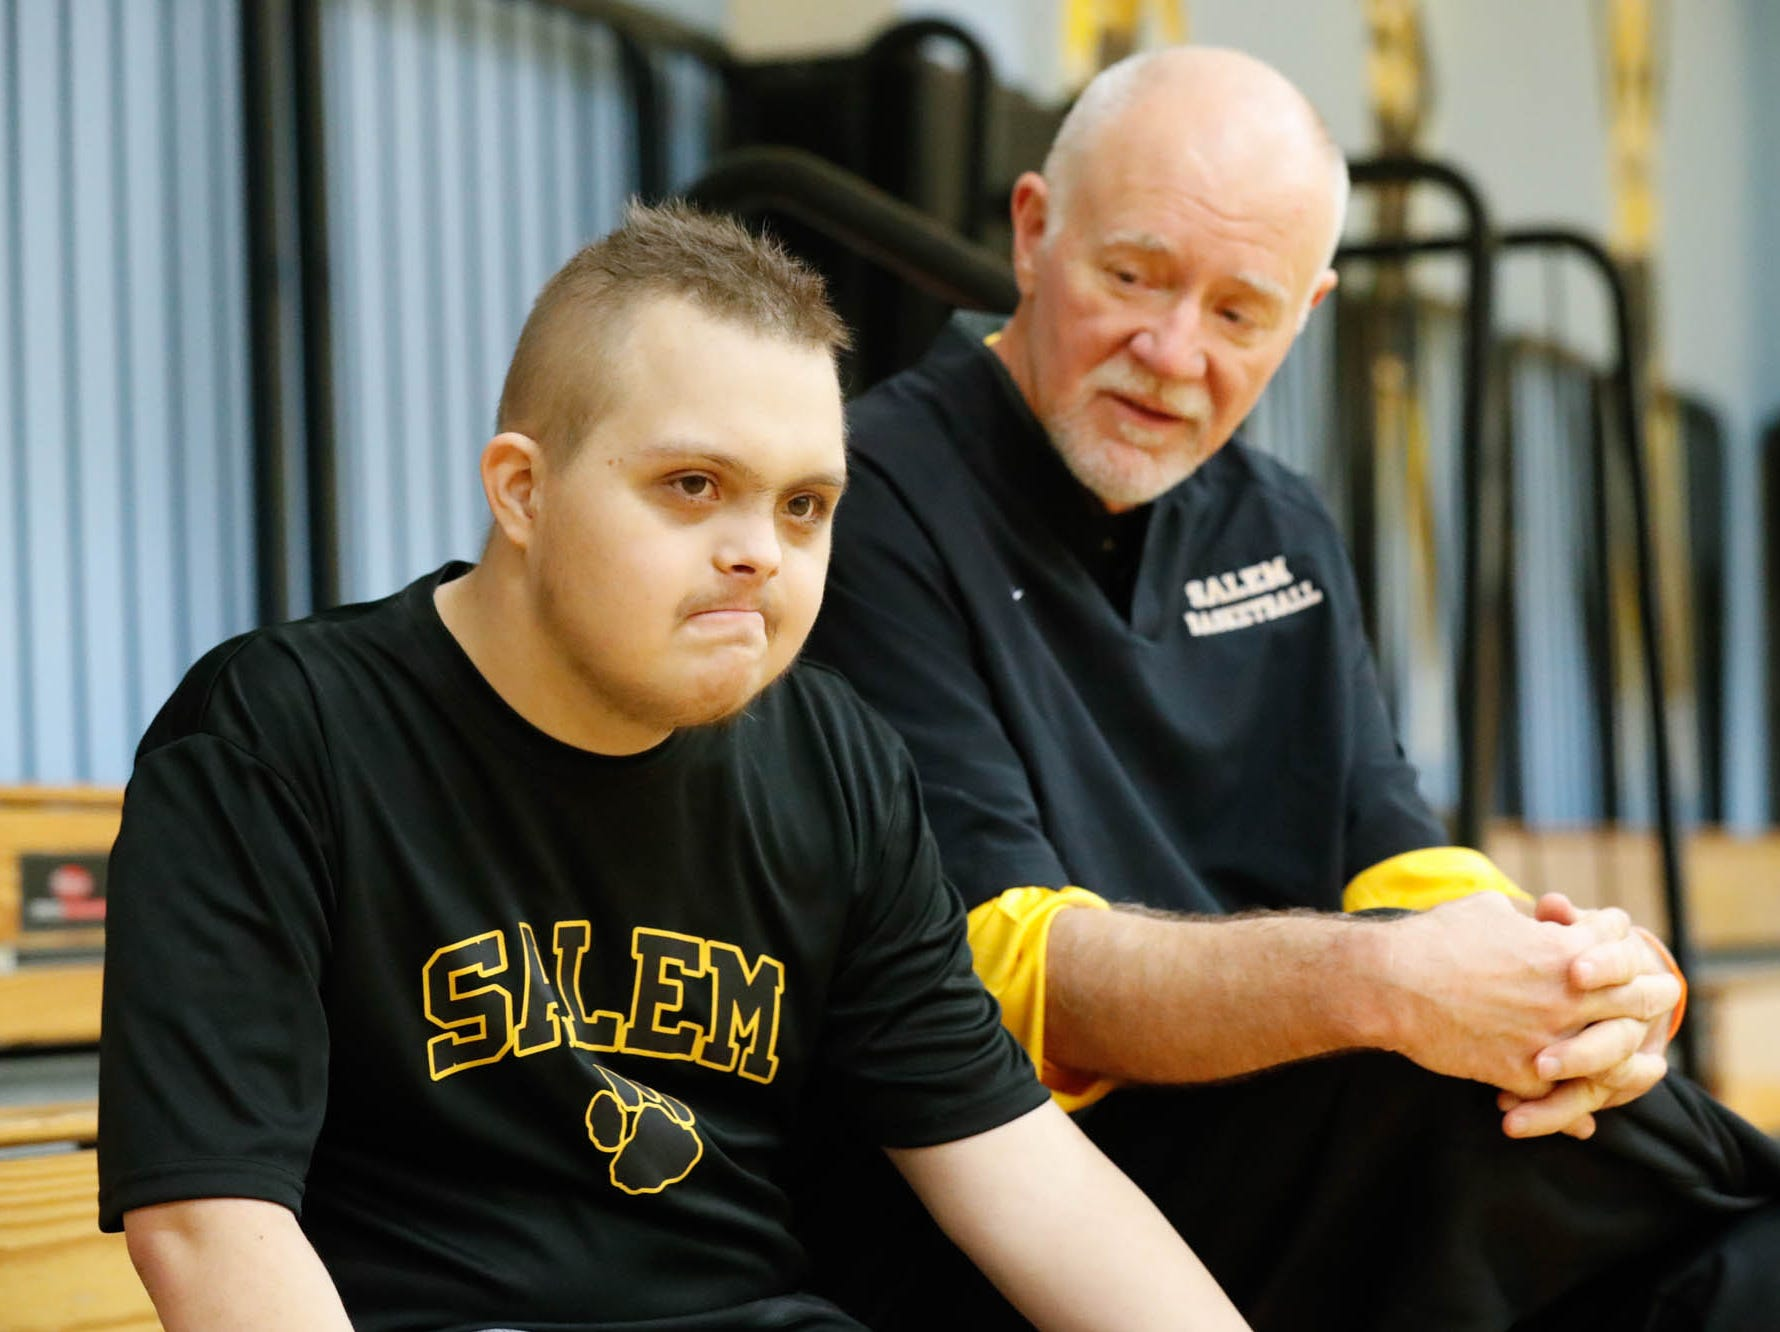 Jalen Pigg, left, and his step dad, Salem High School Boys Basketball Coach Mike Brown, right, rest for a moment on the bleachers during a team practice at Salem High School in Salem Ind. on Tuesday, Jan. 23, 2019. Jalen, who was born with Down Syndrome, is now battling a form of leukemia but has a lot of support from the team. After a stint at Riley Children's Hospital during the holidays, Pigg is working to build his strength and endurance back up to again help Brown with his coaching.